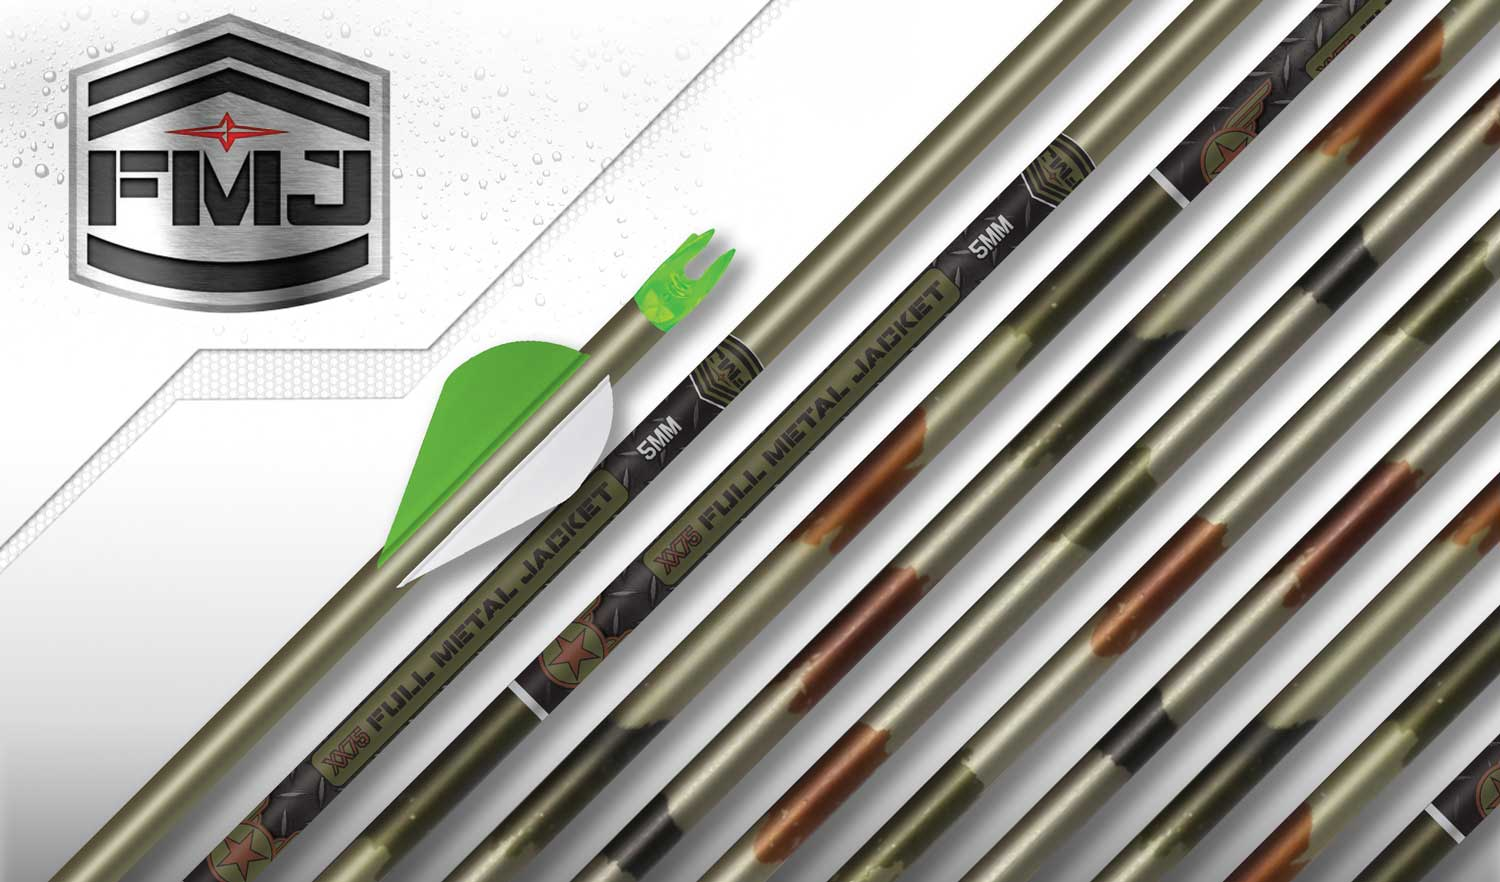 Easton 5mm FMJ Retro XX75 Camo Hunter Arrow – Available for a Limited Time